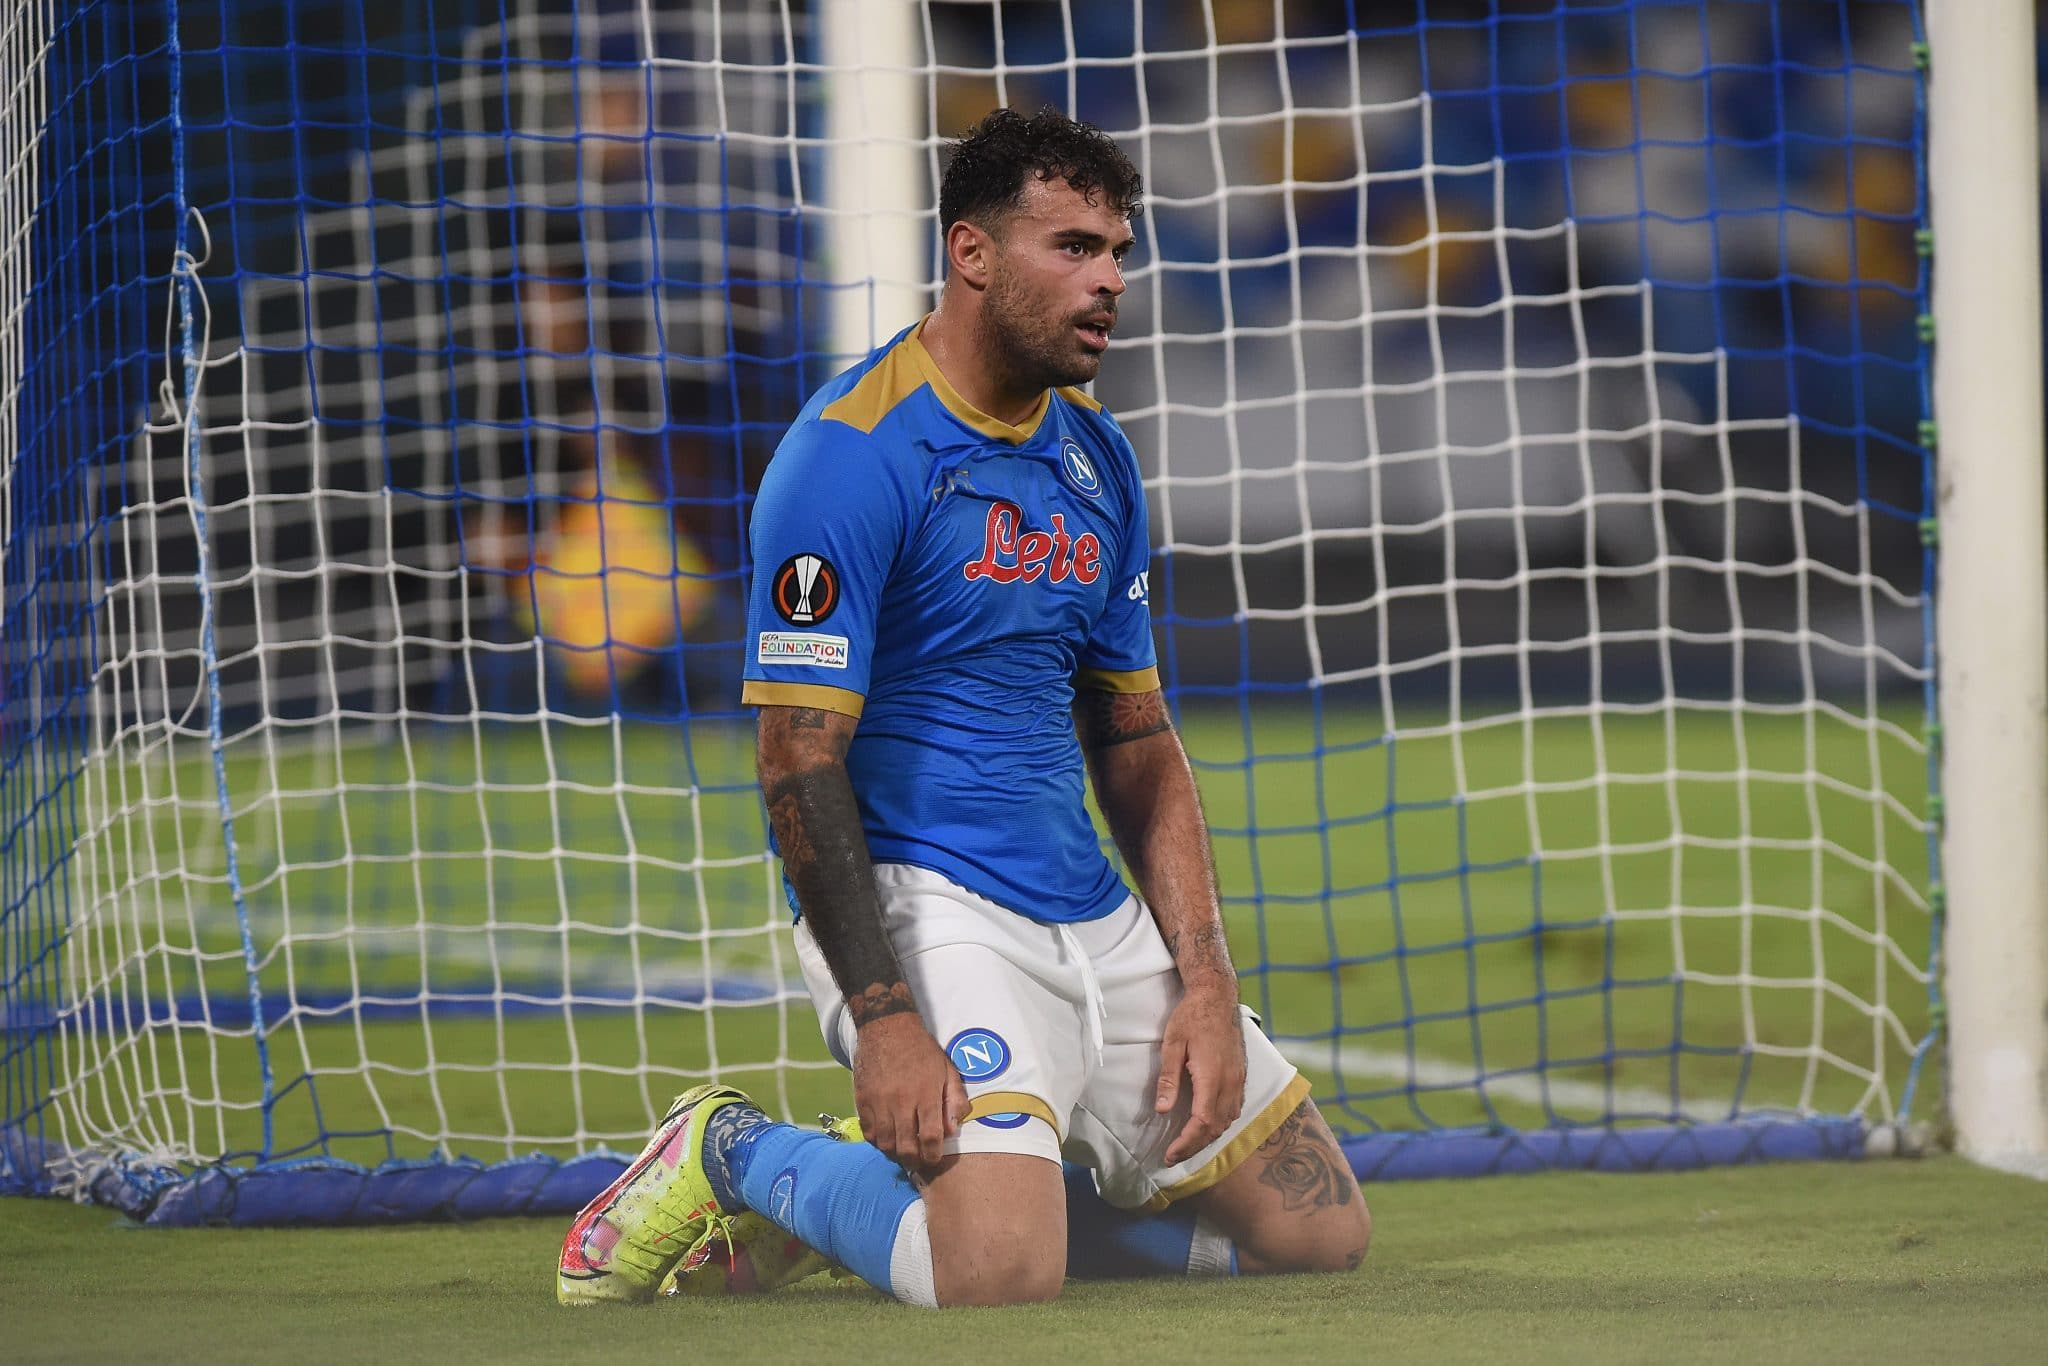 Andrea Petagna of SSC Napoli looks Dejected during the UEFA Europa League Group C match between SSC Napoli and FC Spartak Moscow at Stadio Diego Armando Maradona Naples Italy on 30 September 2021. (Photo by Franco Romano/NurPhoto via Getty Images)